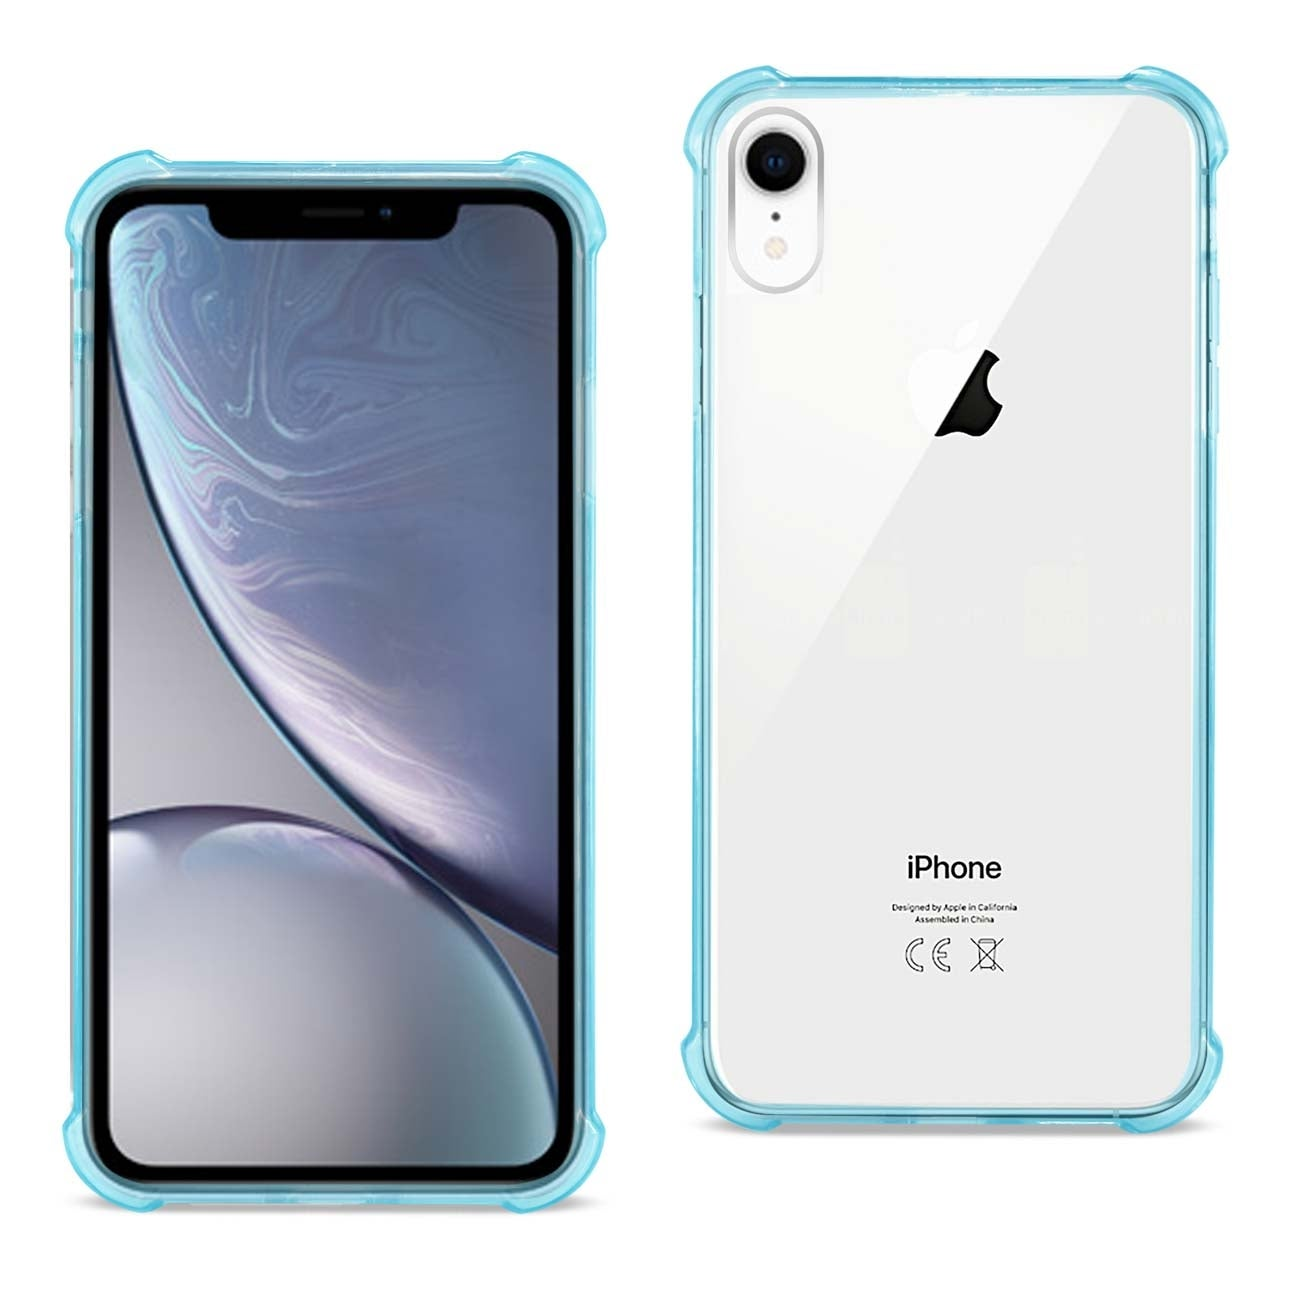 new concept f41ac a6831 iPhone XR Clear Bumper Case With Air Cushion Protection